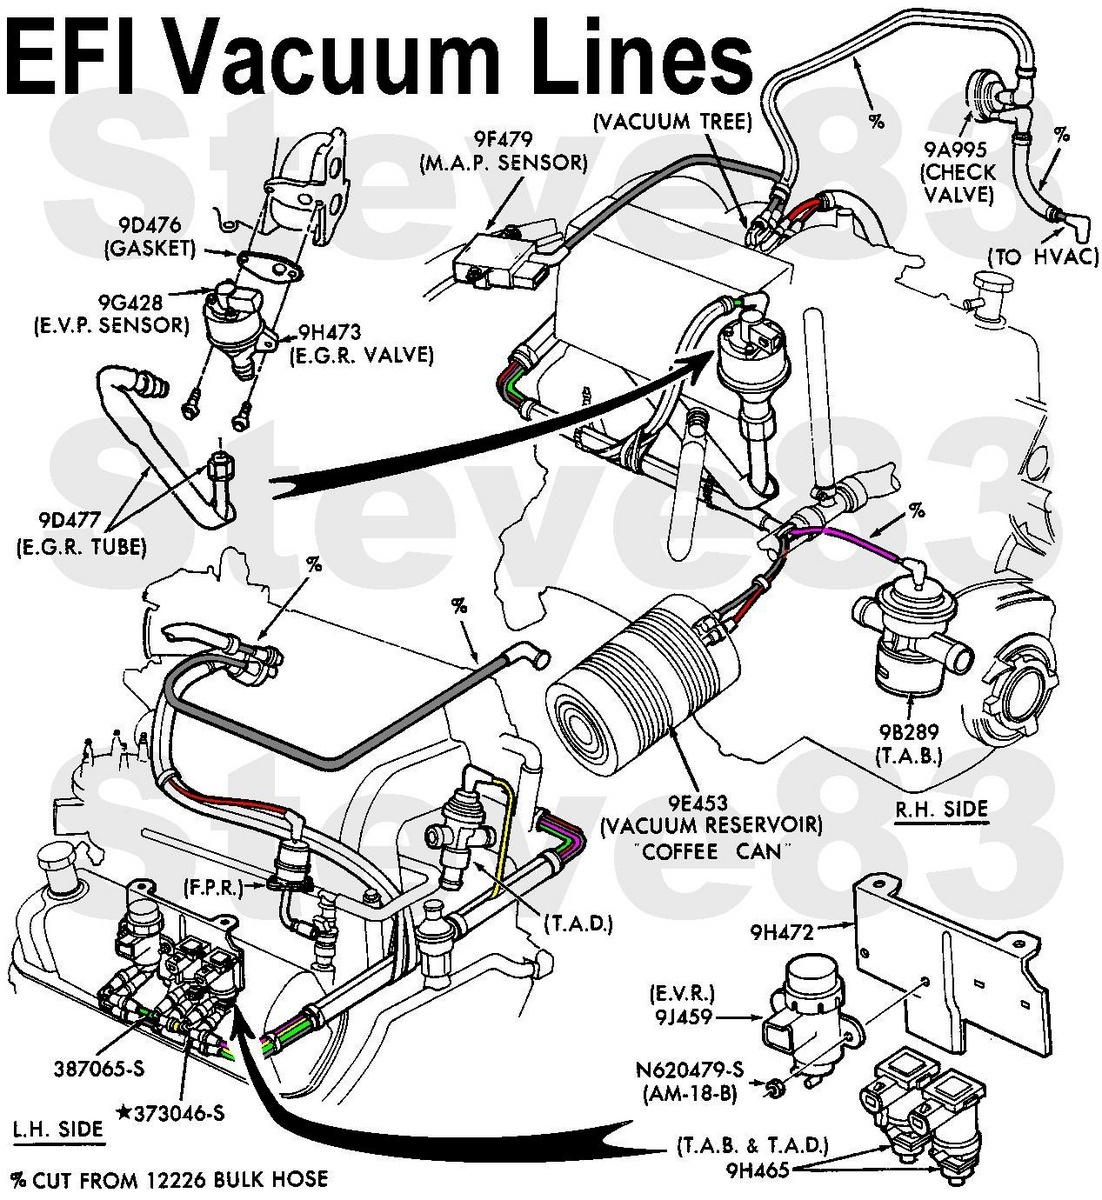 hight resolution of ford f 150 questions is there a diagram for vacuum hoses on 1990 1990 ford f150 engine diagram 1990 ford f 150 motor diagram